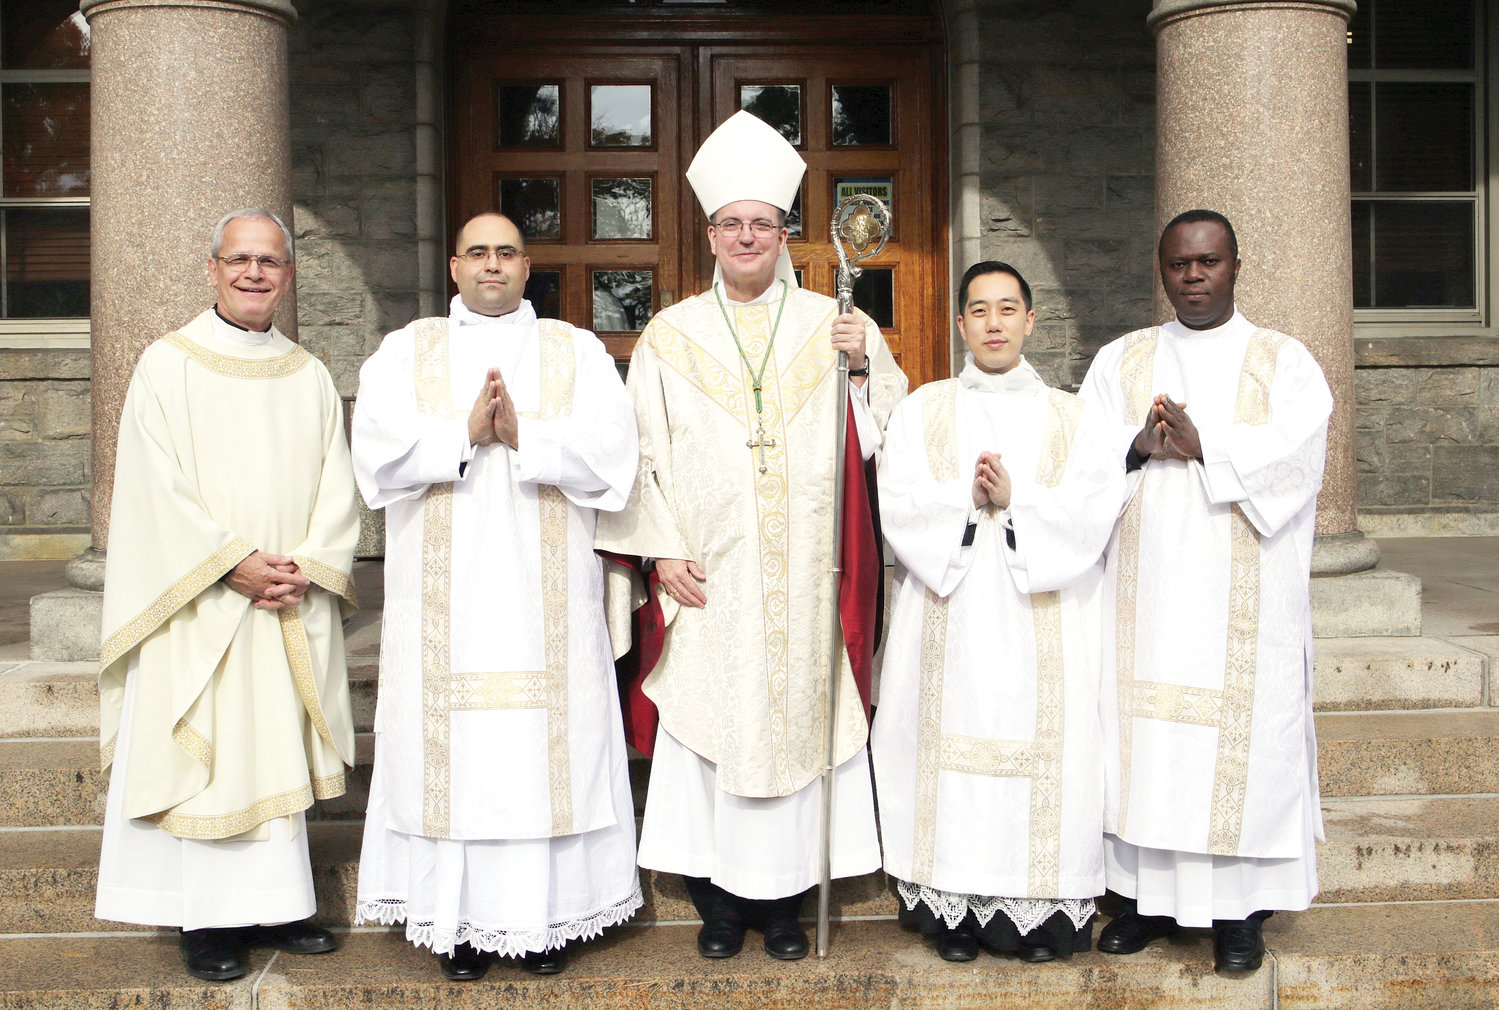 Joining Bishop John O. Barres of the Diocese of Rockville Centre, the principal celebrant, and Msgr. Peter Vaccari, rector of St. Joseph's Seminary, are Deacon John Figueroa, Deacon Roger Kwan and Deacon Joseph Akunaeziri.